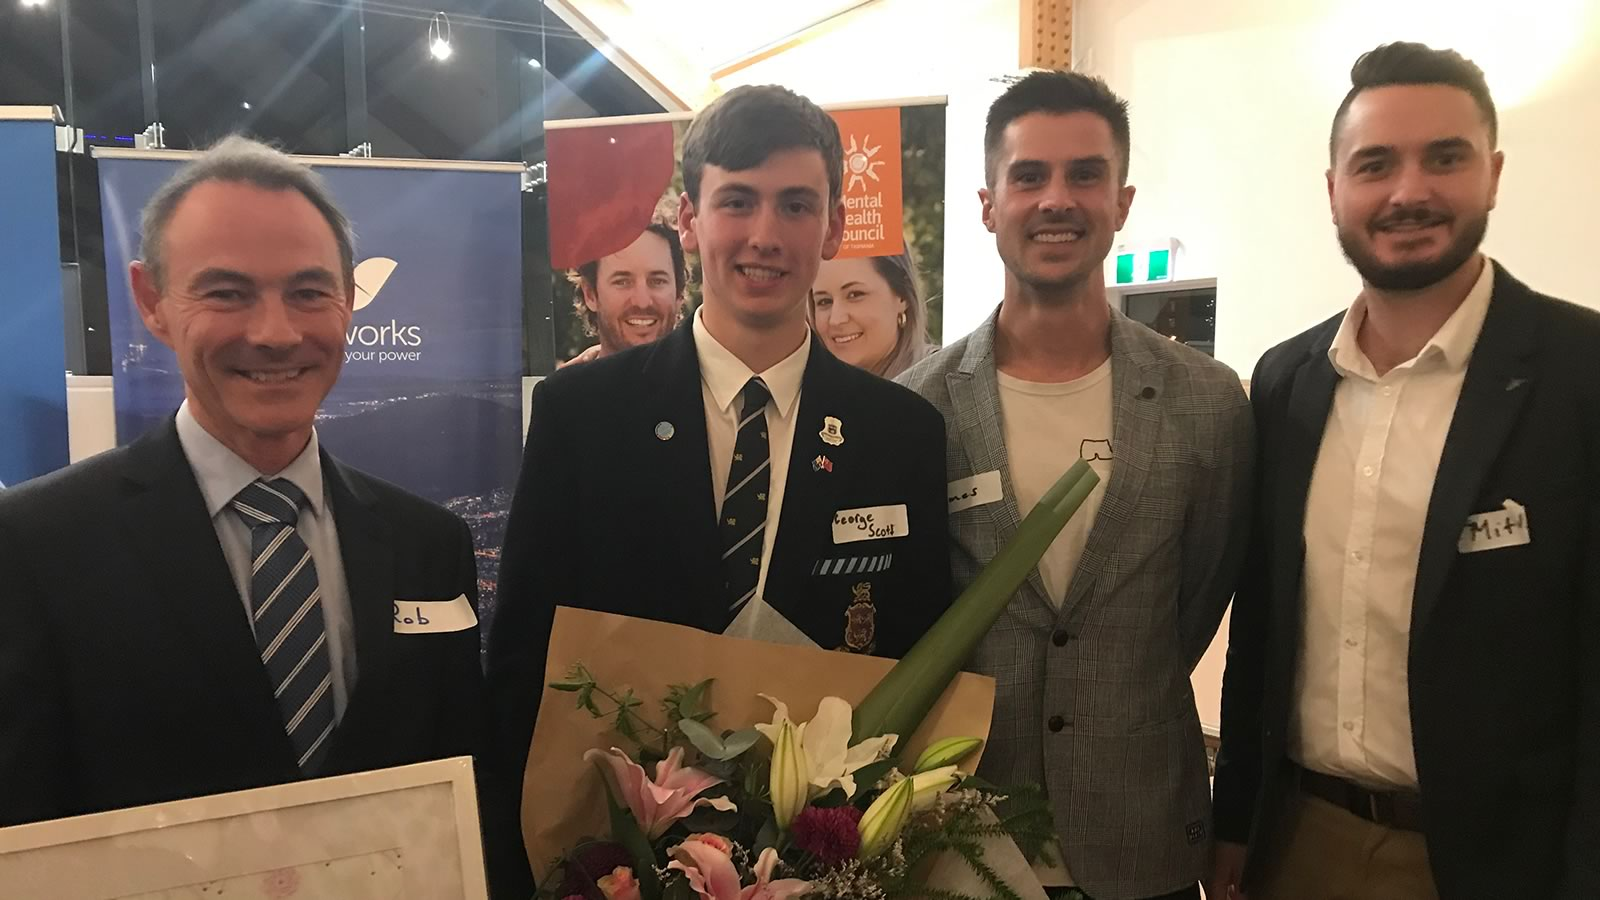 Headmaster Dr Rob McEwan, George Scott (Year 12 Mental Health Prefect) pictured with James Rice & Mitch McPherson from Speak Up! Stay ChatTY.